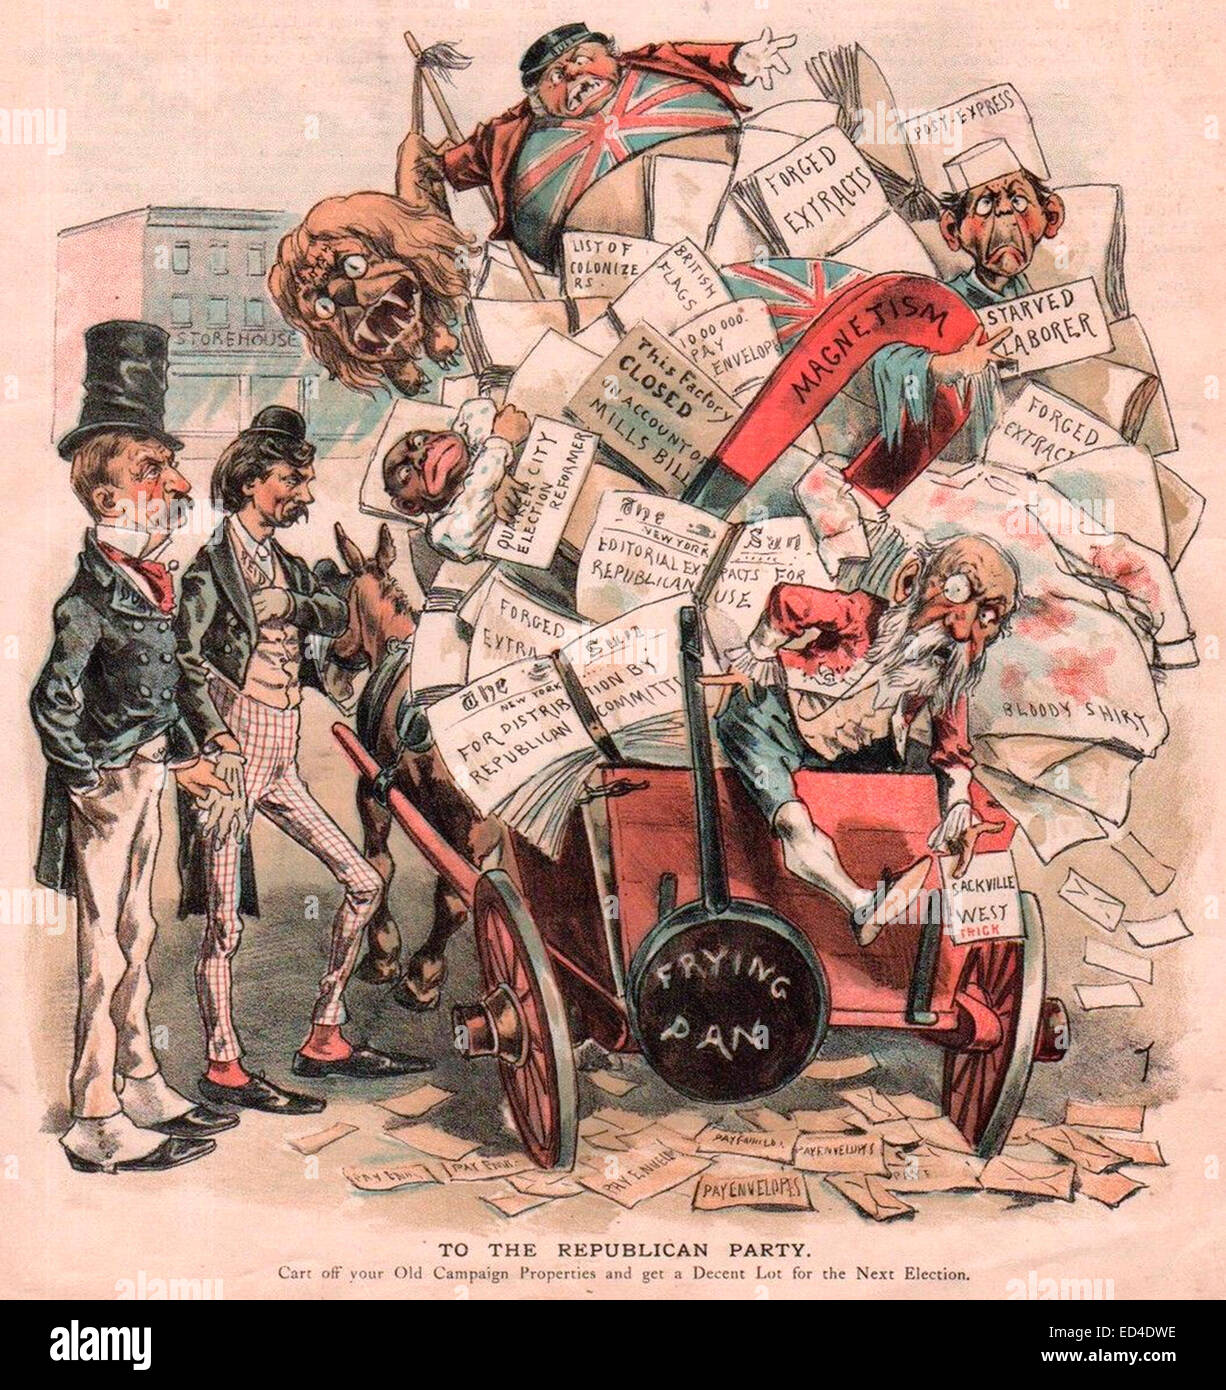 To the Republican Party - Cart off your Old Campaign Properties and get a Decent Lot for the Next Election - 1888 - Stock Image